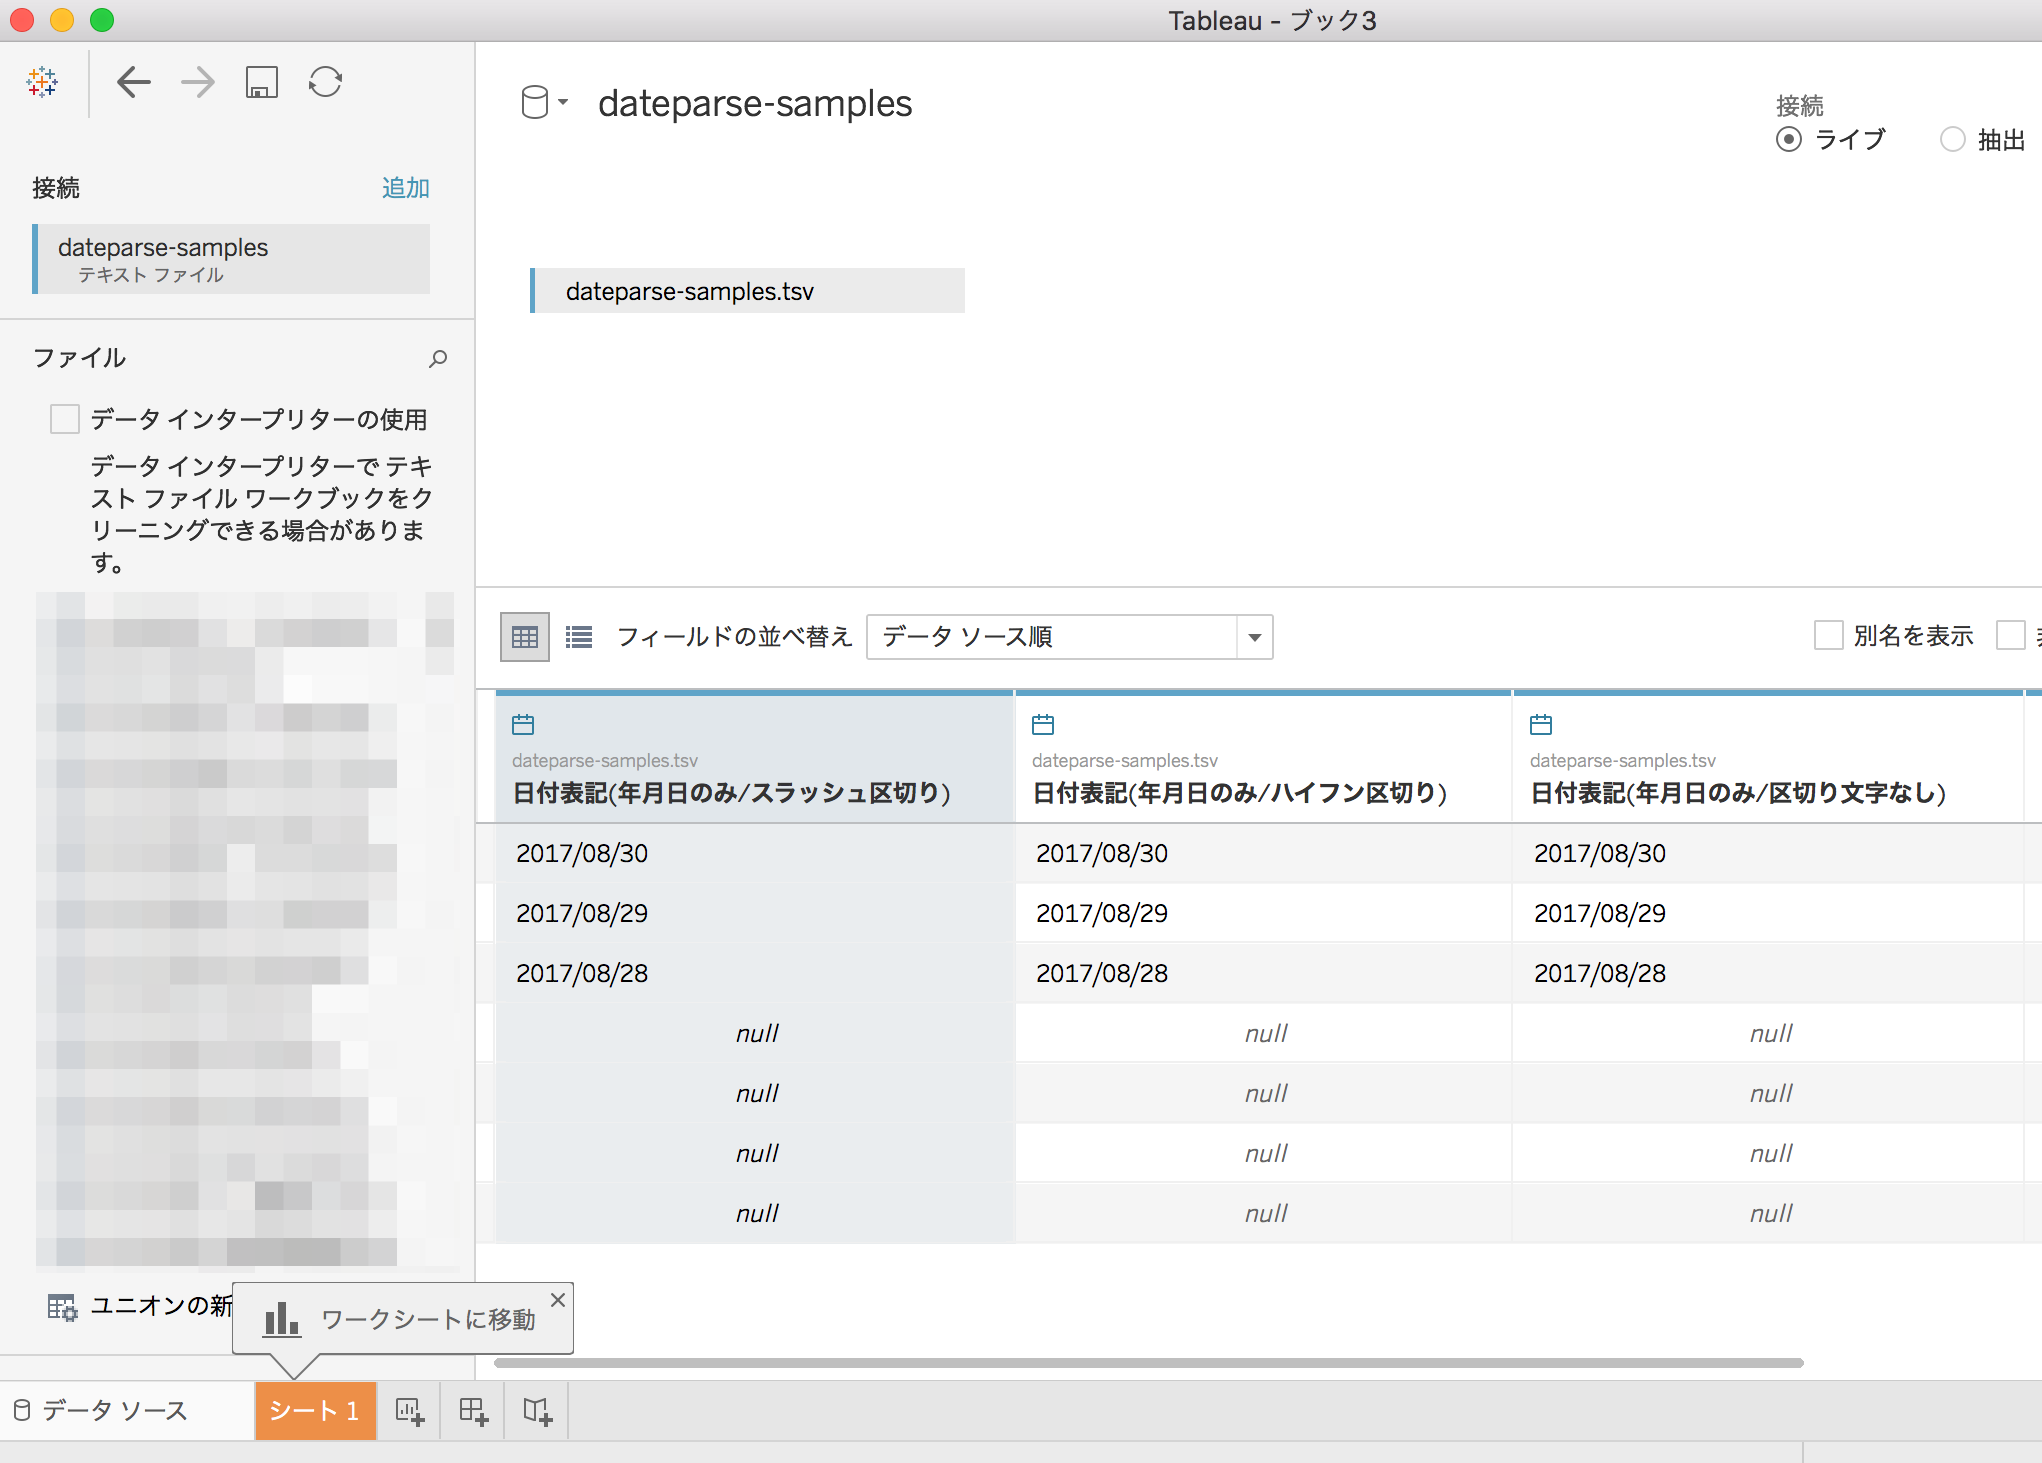 tableau102-new-features-auto-dateparse_01